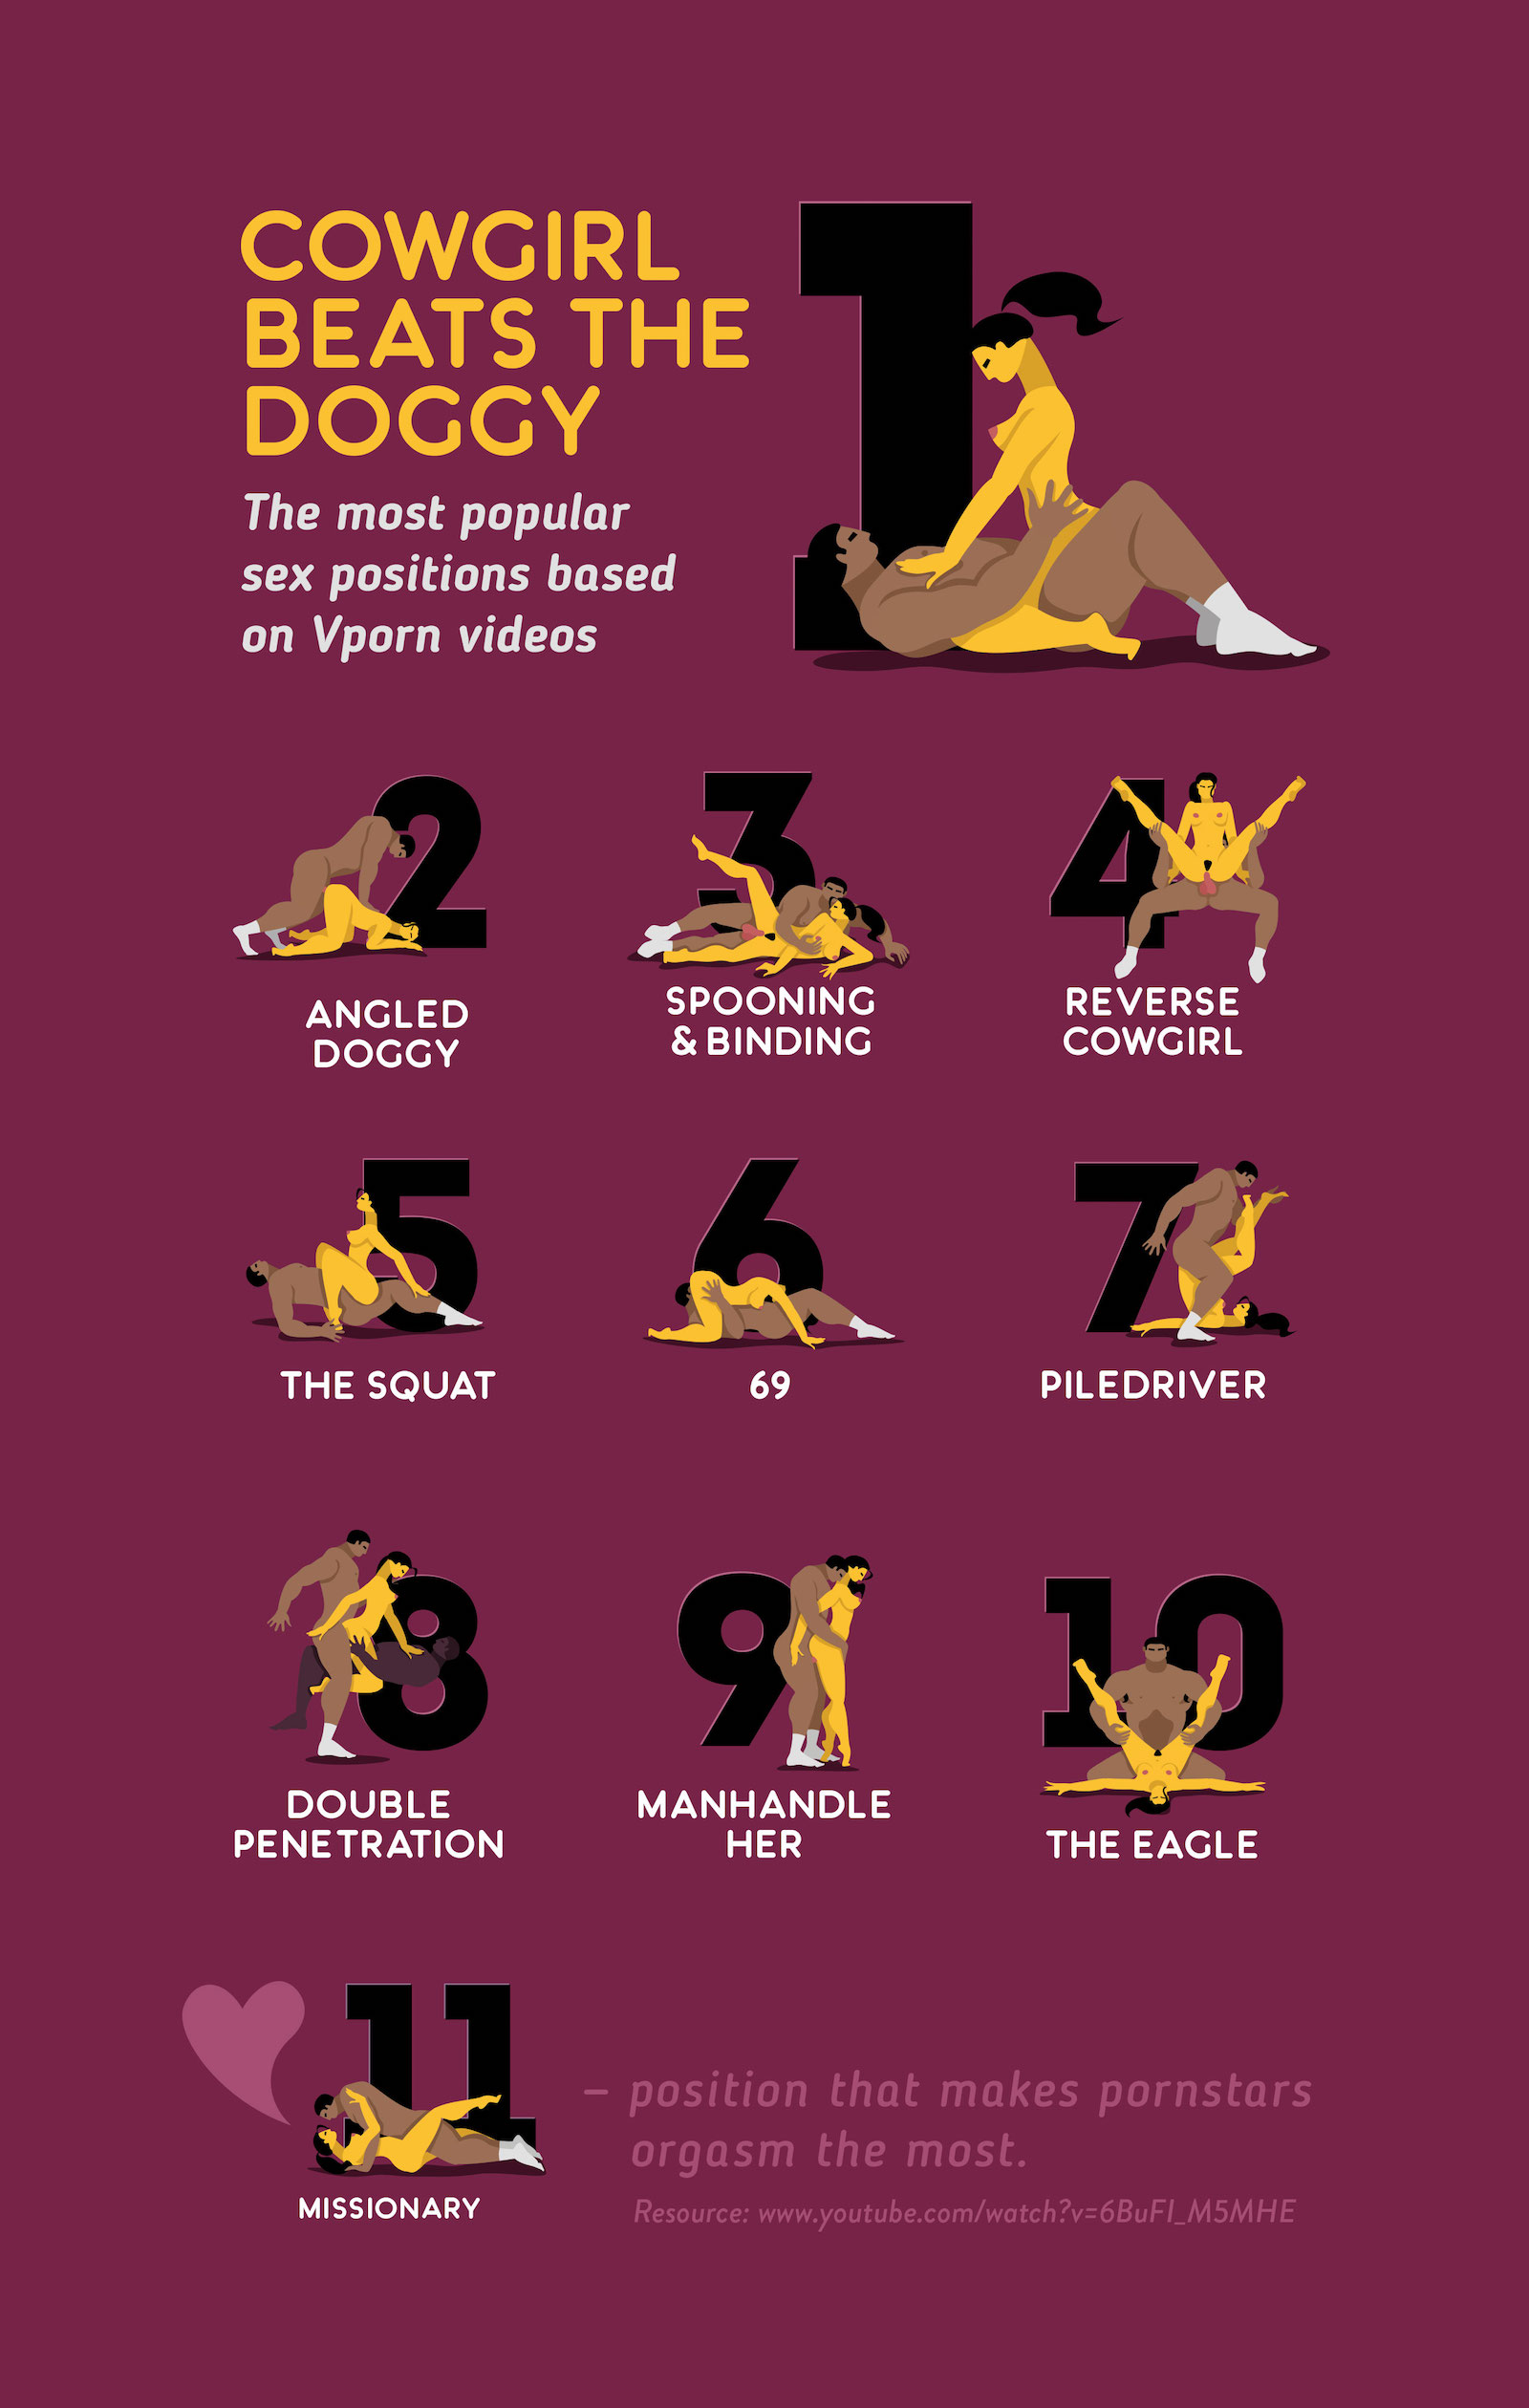 most popular sex positions